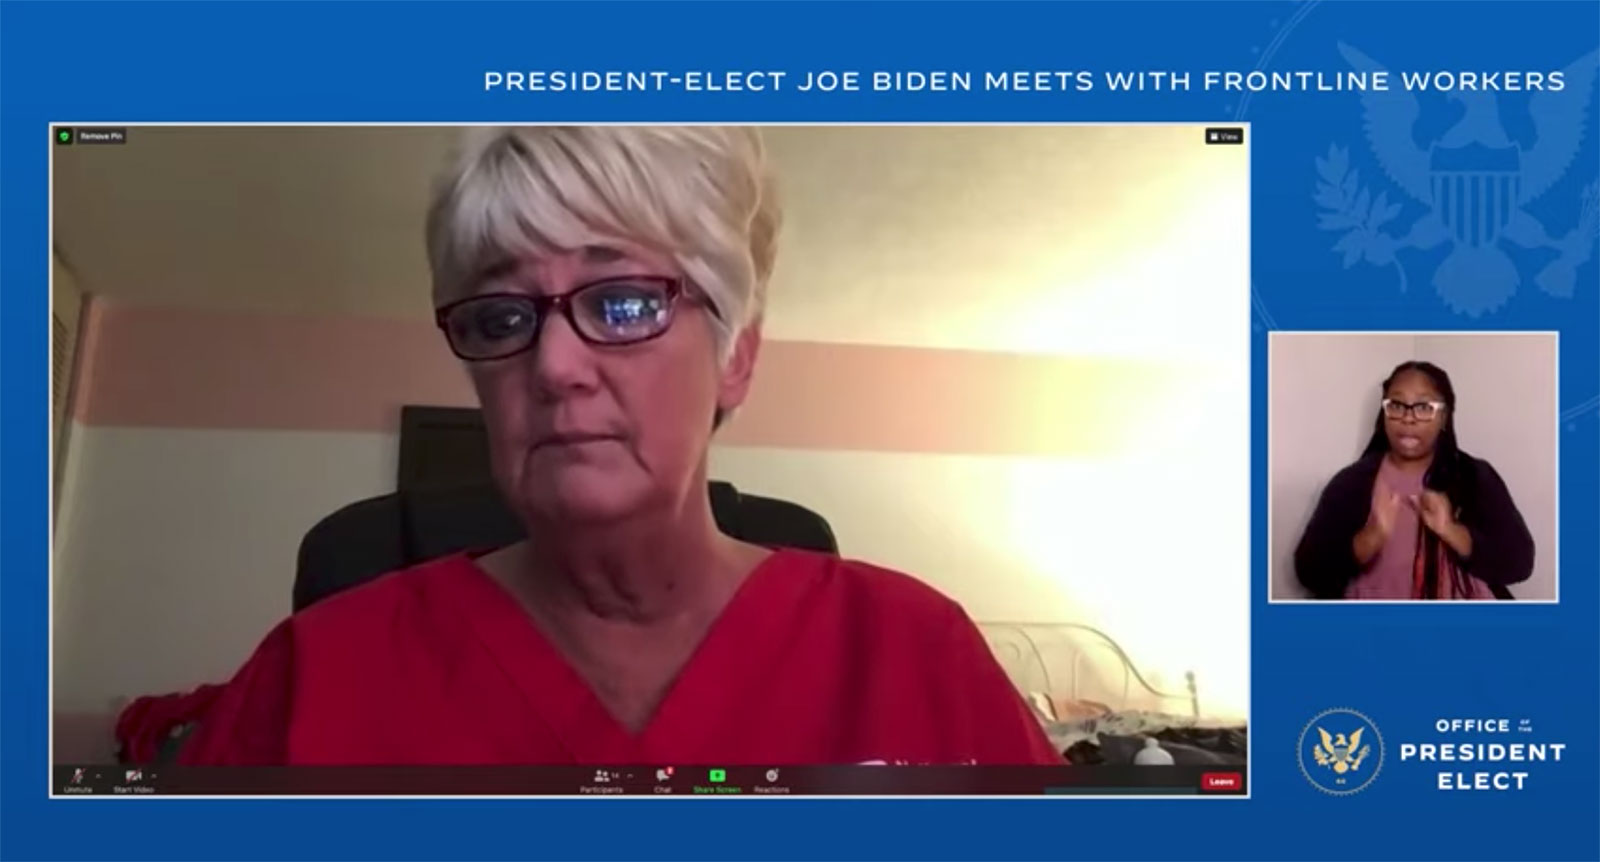 Mary Turner speaks during a virtual roundtable with frontline health care workers and President-elect Joe Biden.